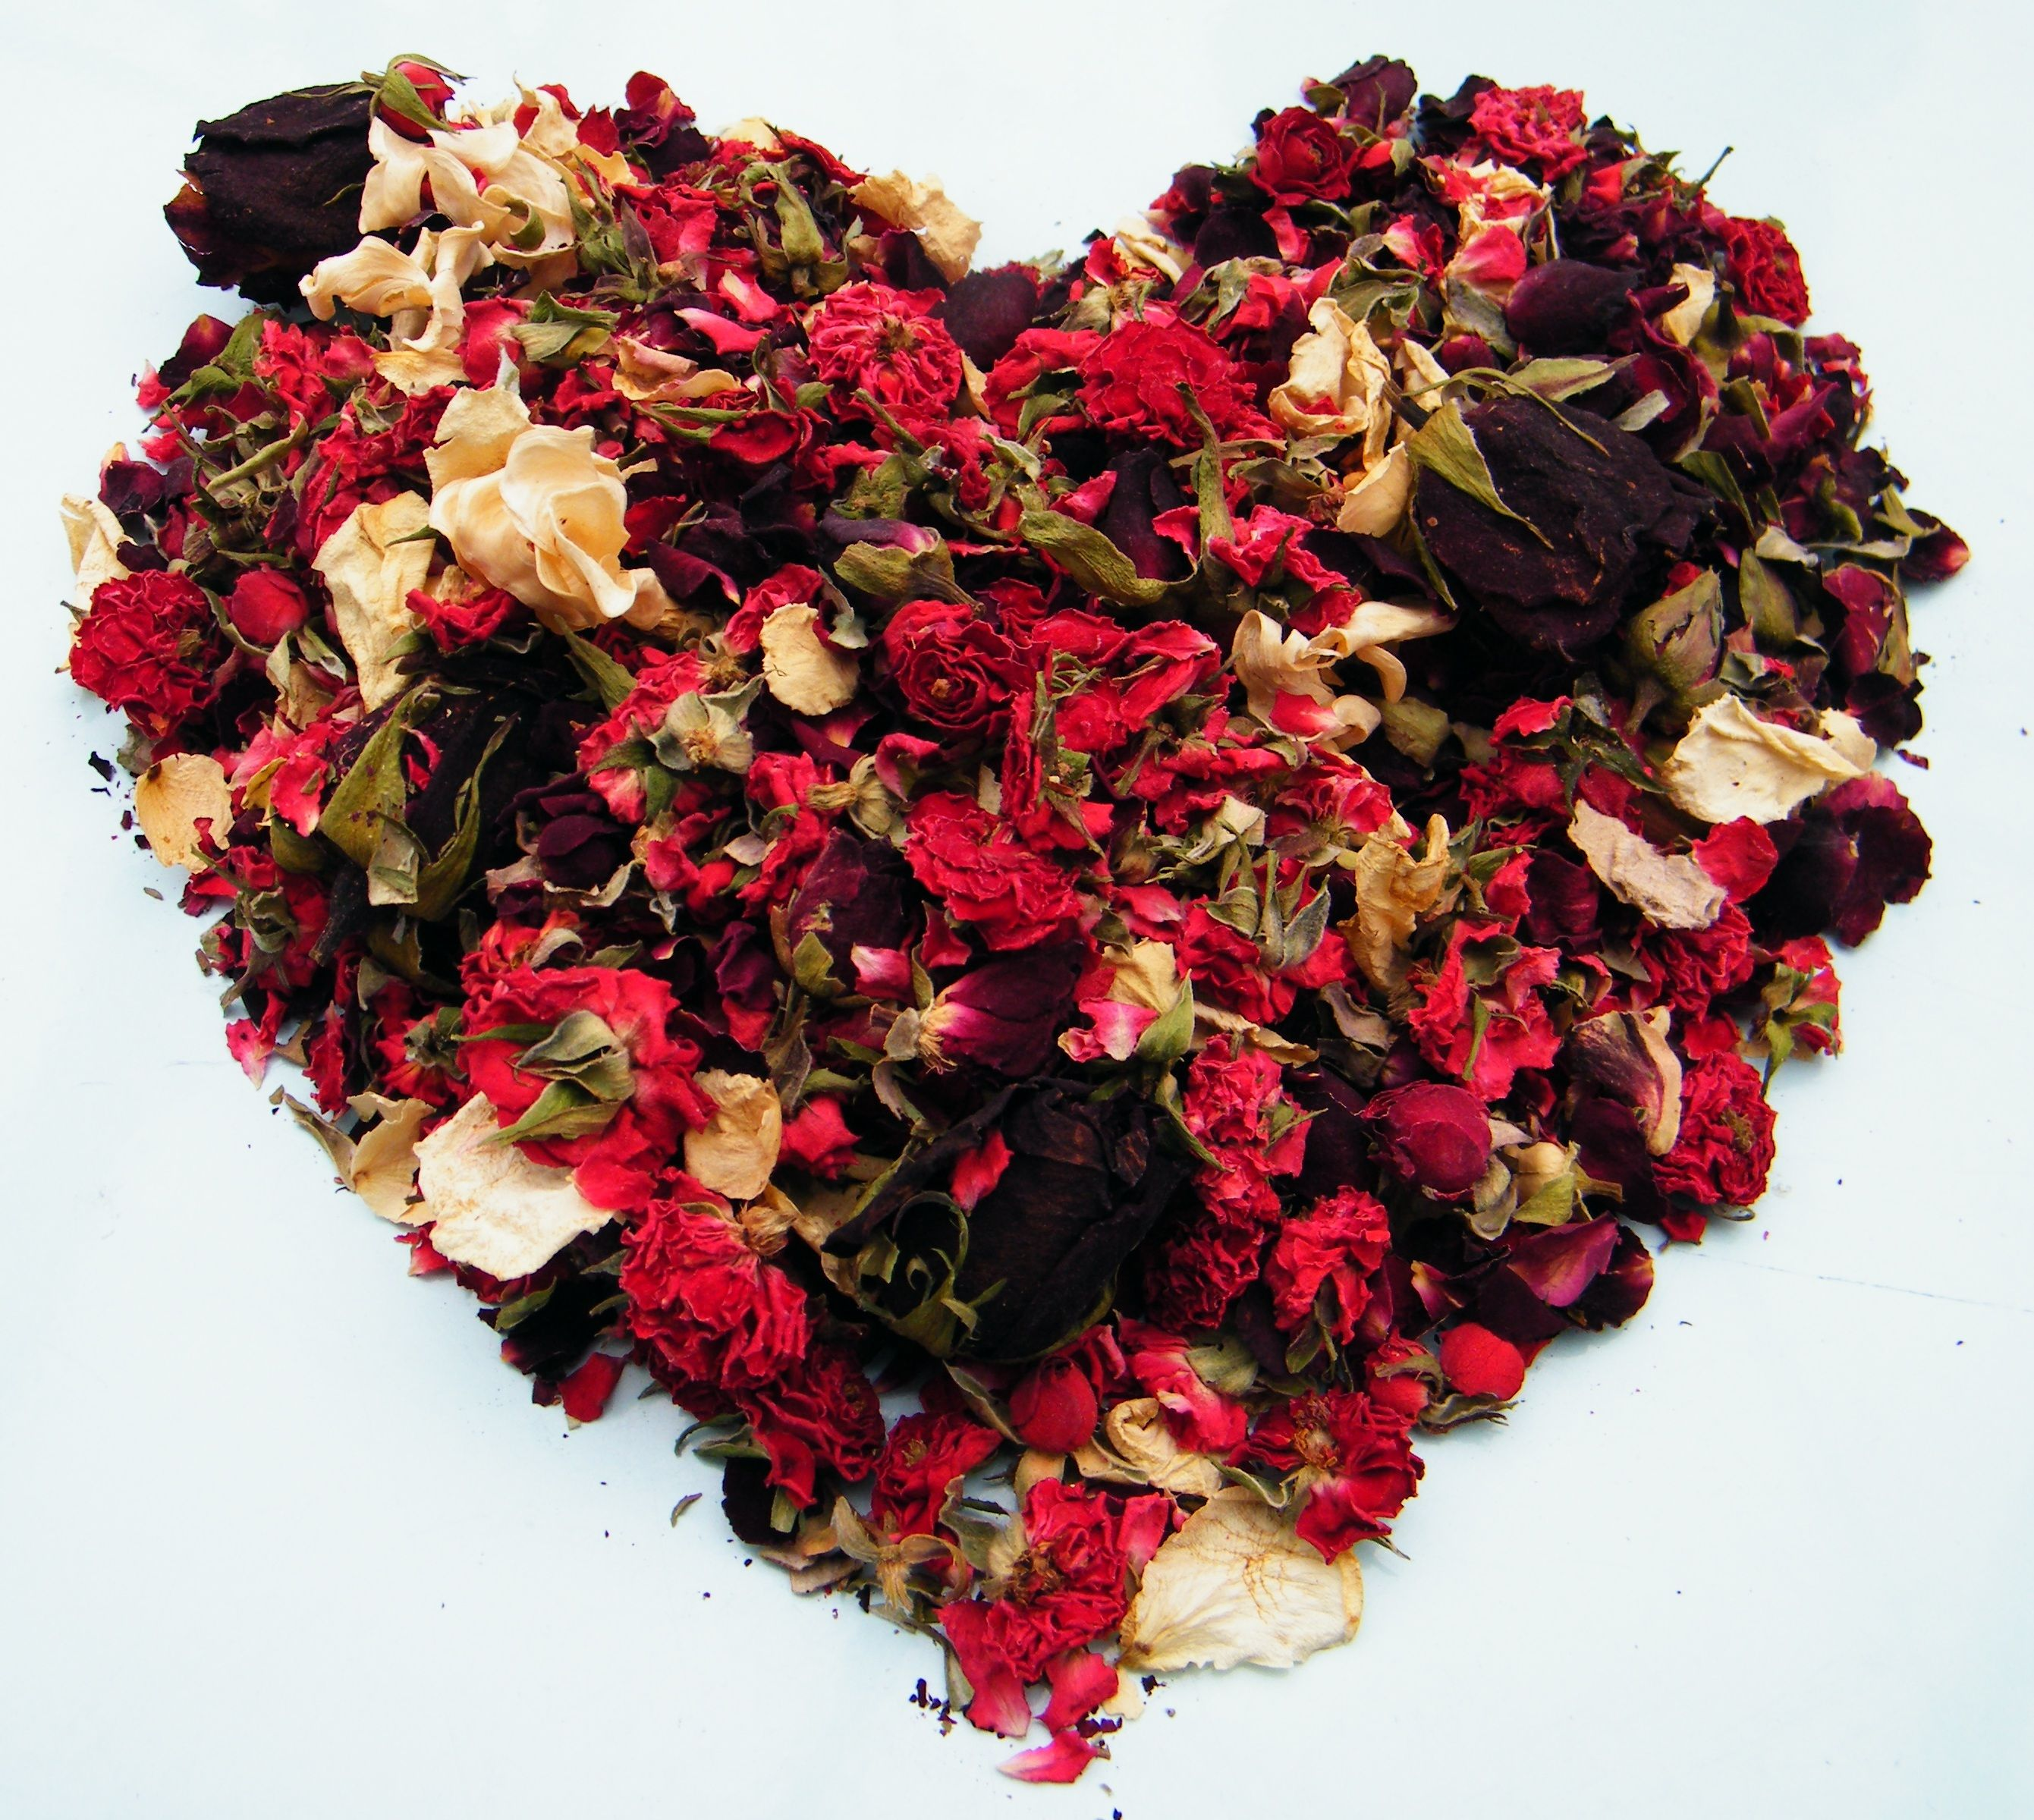 Valentine heart made from dried rose buds and petals by Ruth daisyshop.co.uk